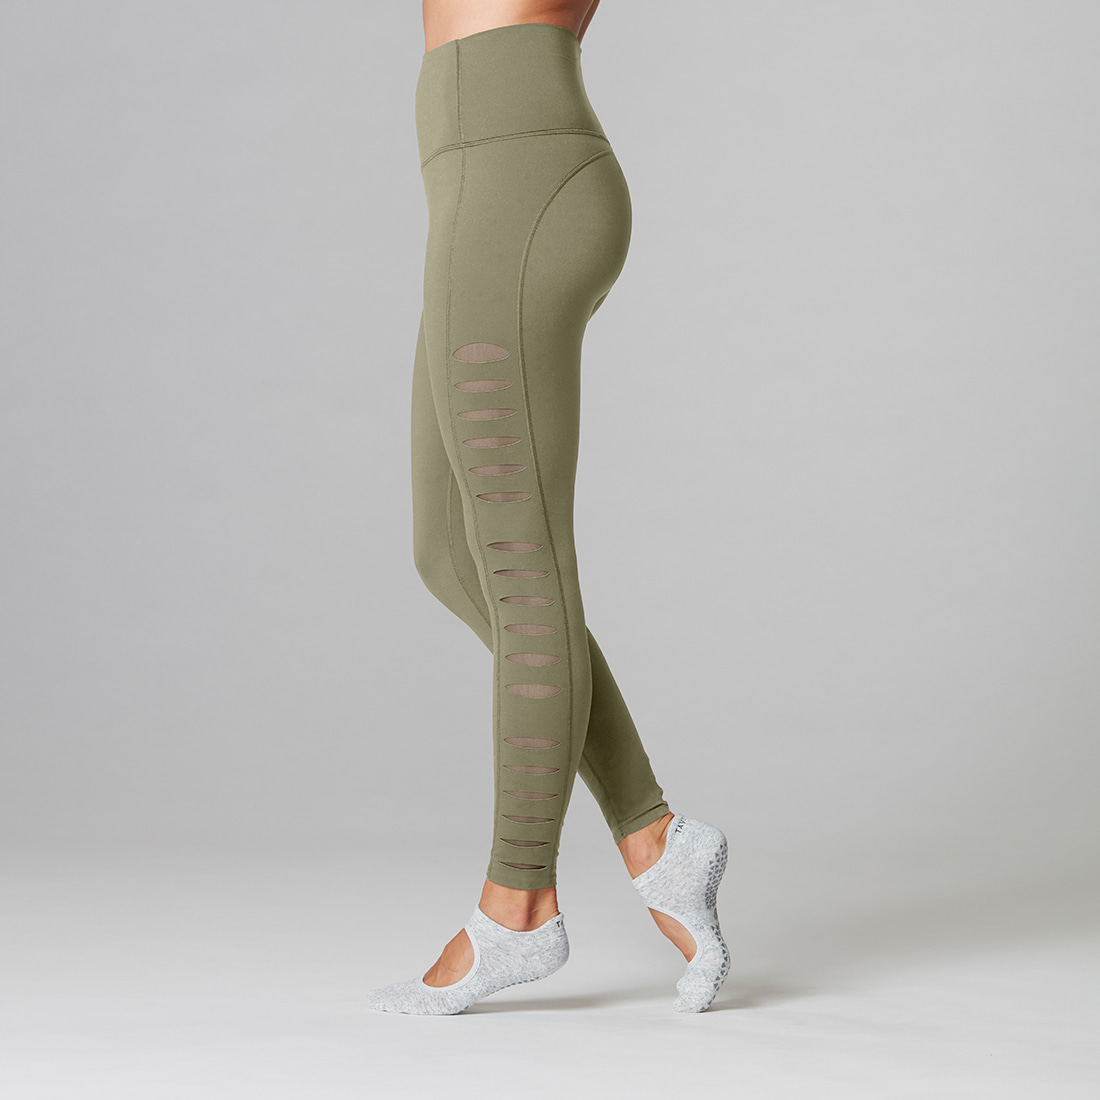 TaviNoir Laser Cut Tight Olive